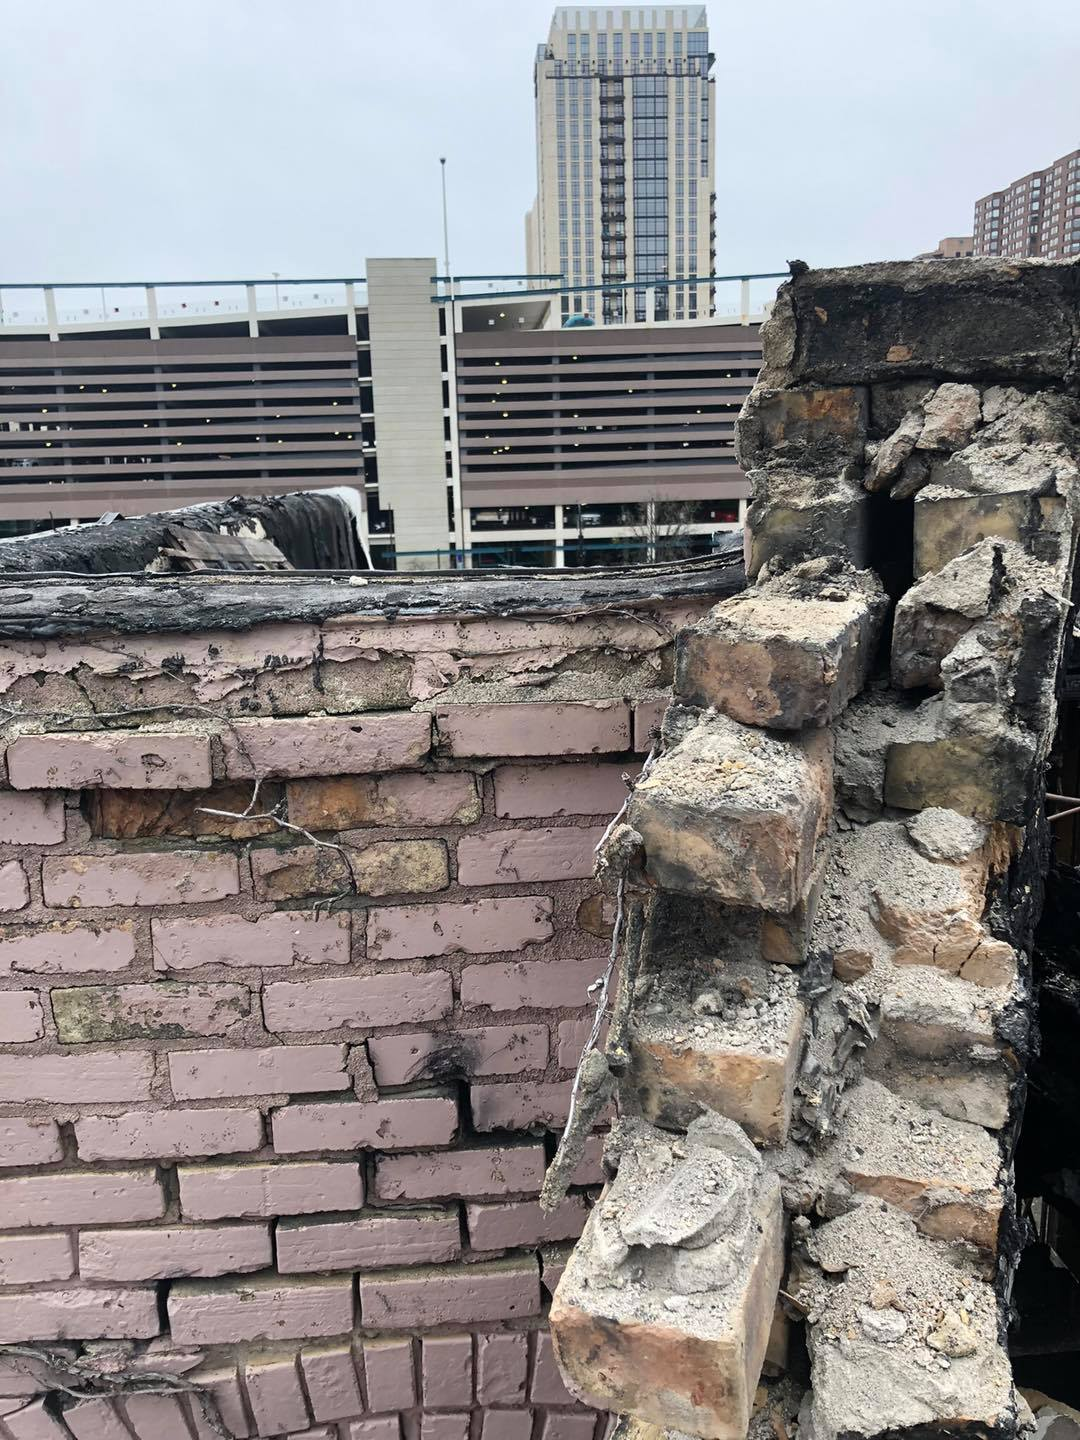 When the fire was raging, the parapets and windows were blown out by the fire ho